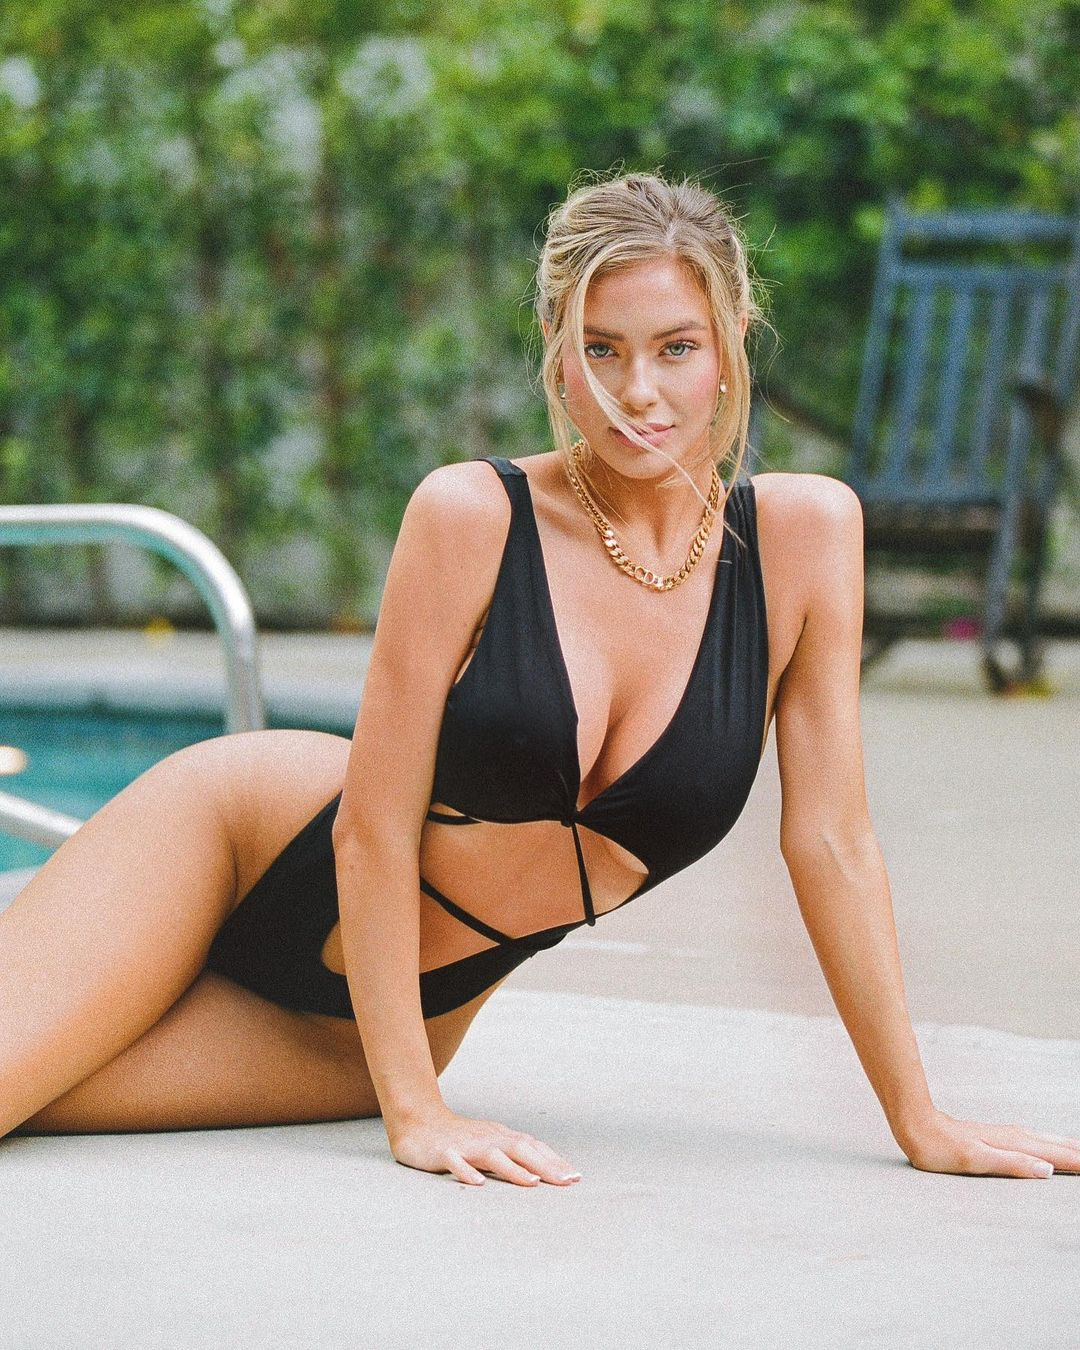 Hannah Palmer is a Blonde Model in a Unique Black One Piece Swimsuit 4